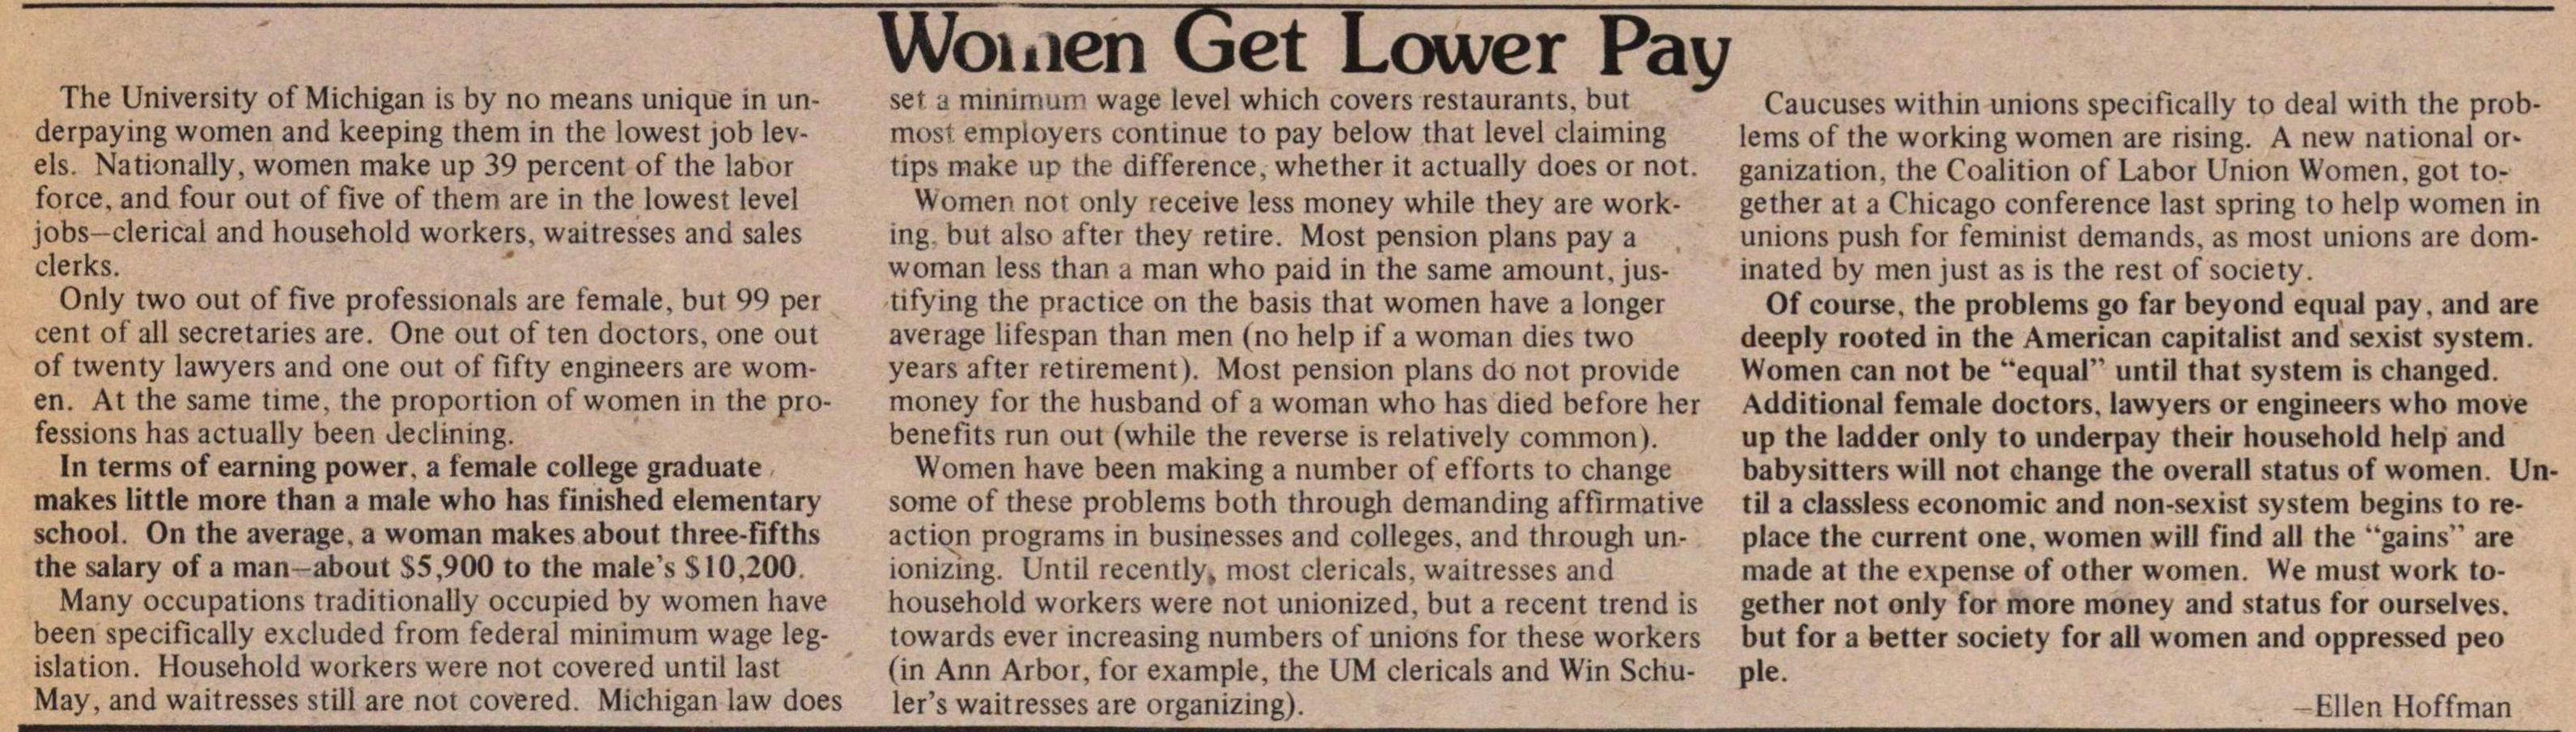 Women Get Lower Pay image